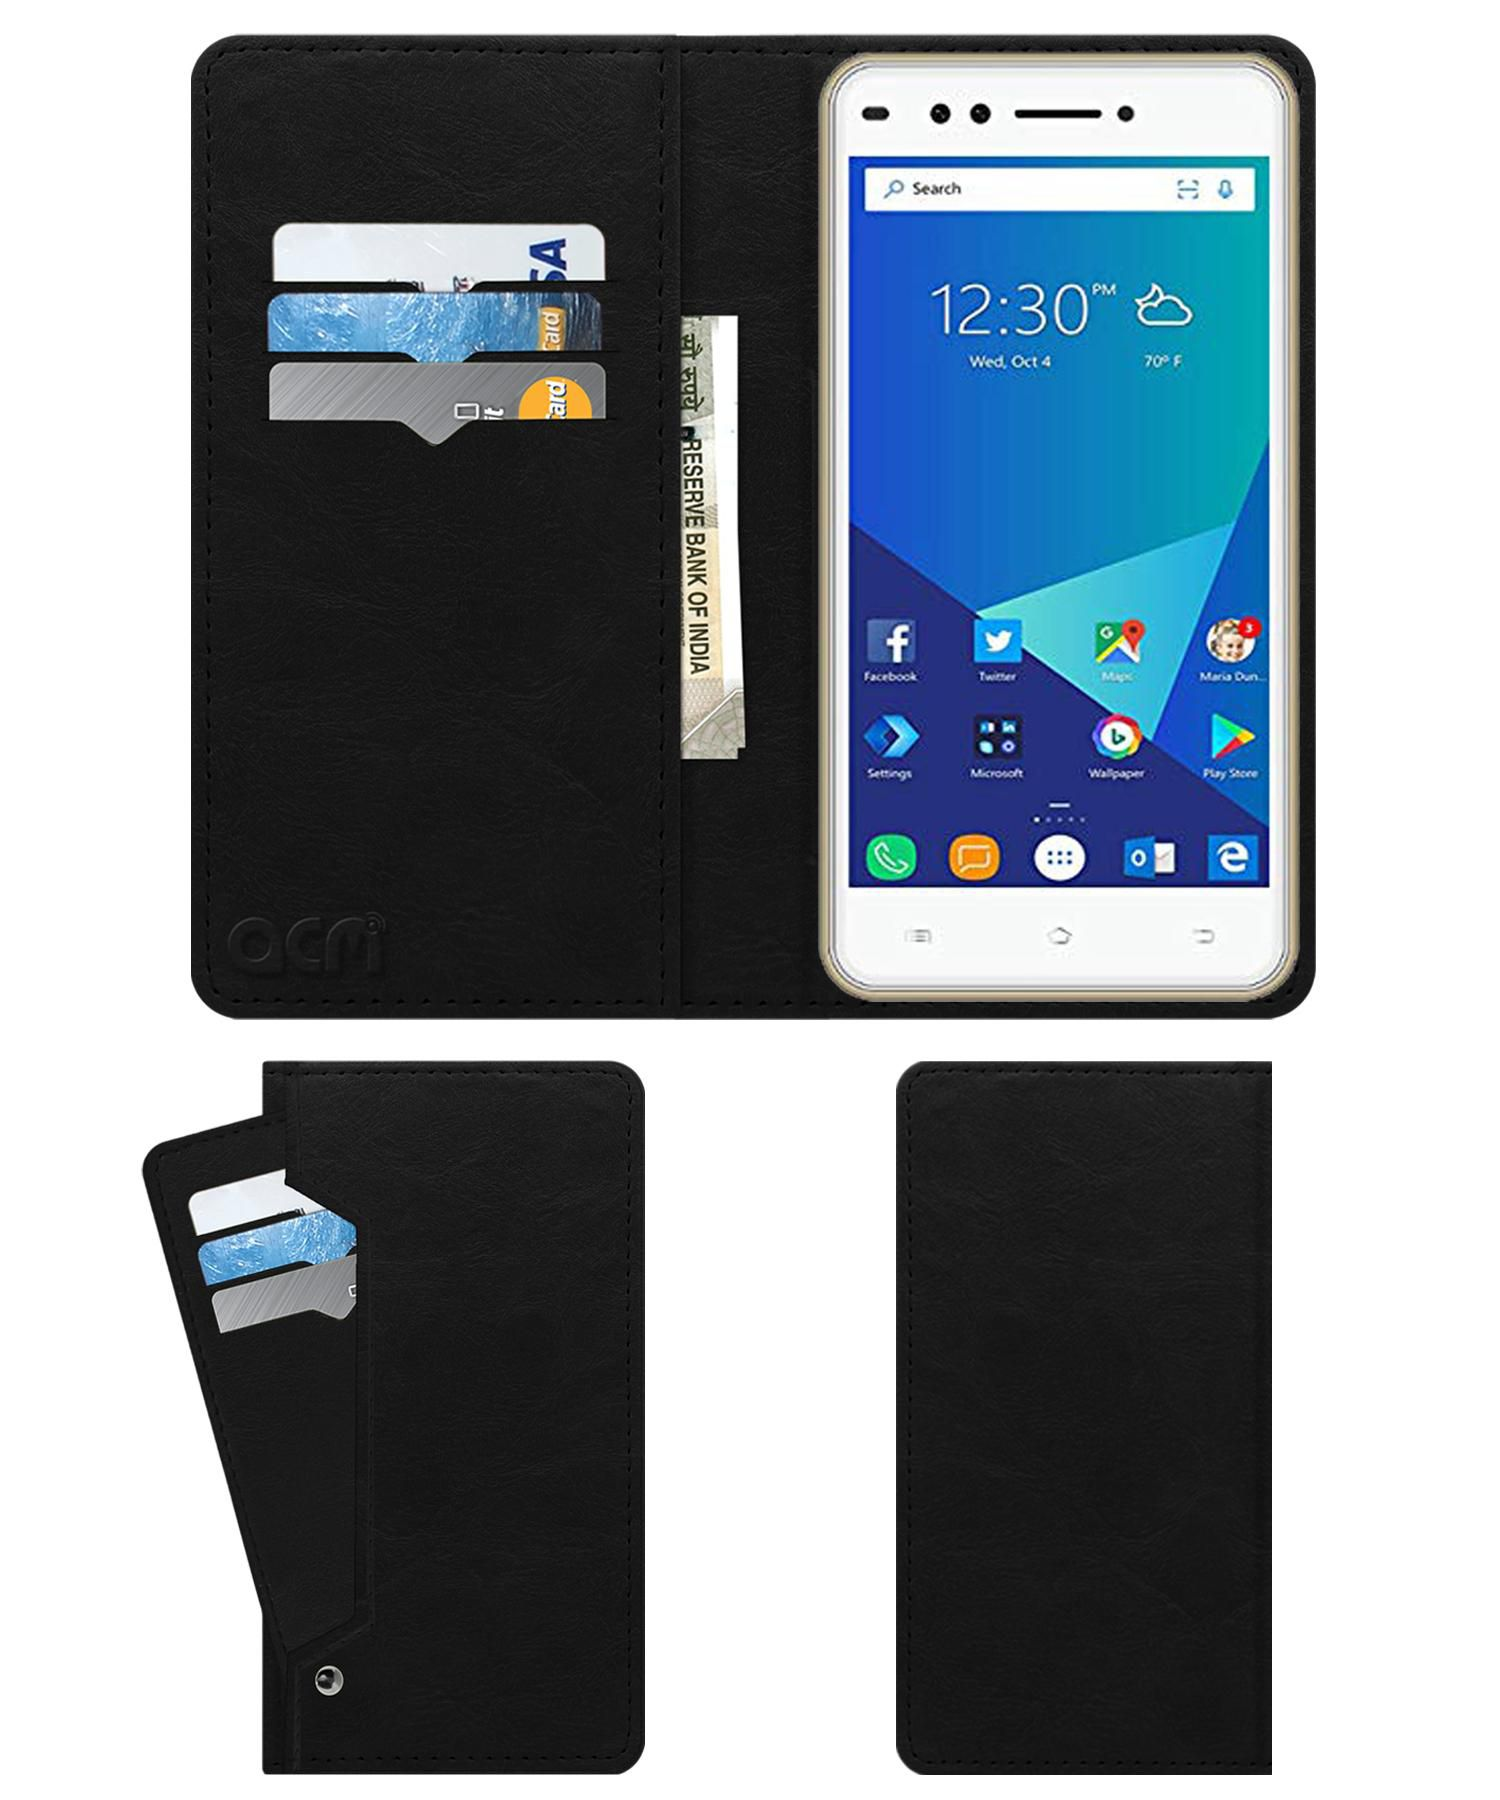 Forme R7 Flip Cover by ACM - Black Wallet Case,Can store 6 Card & Cash,Royal Black